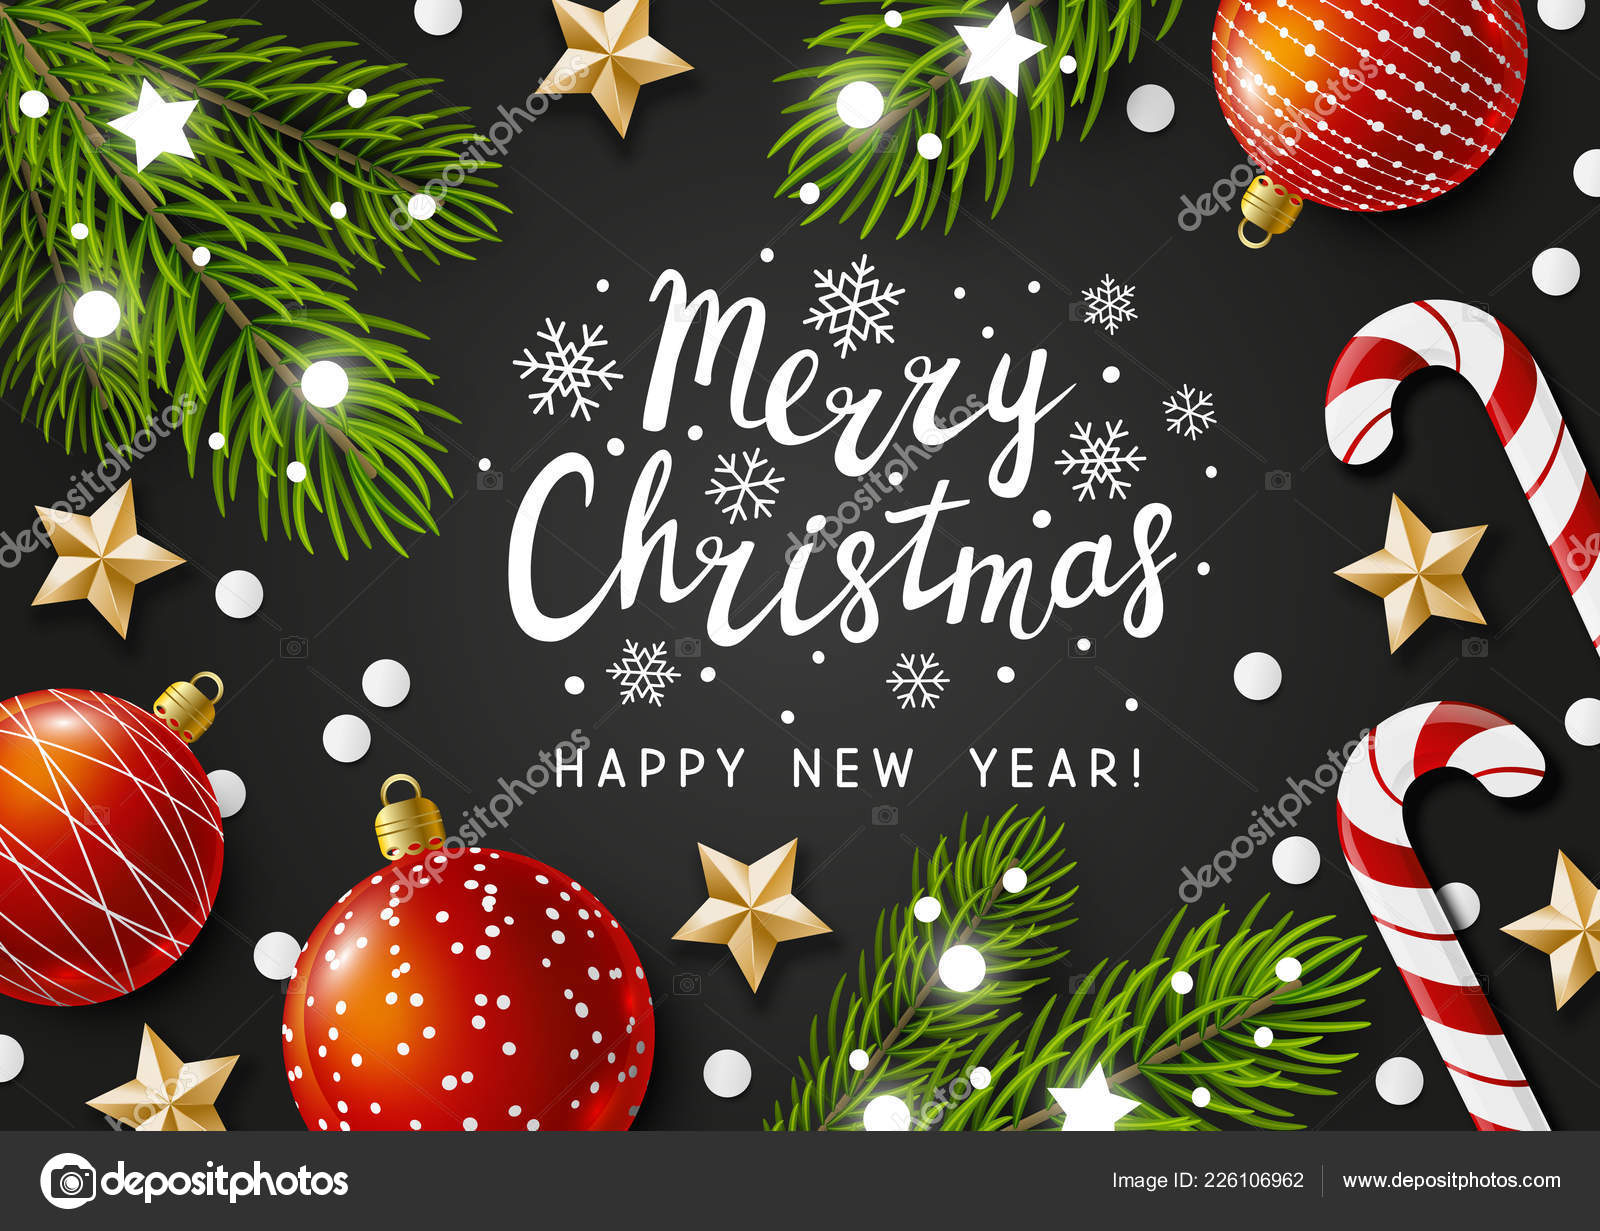 Merry Christmas Happy New Year Greeting Card Holiday ...